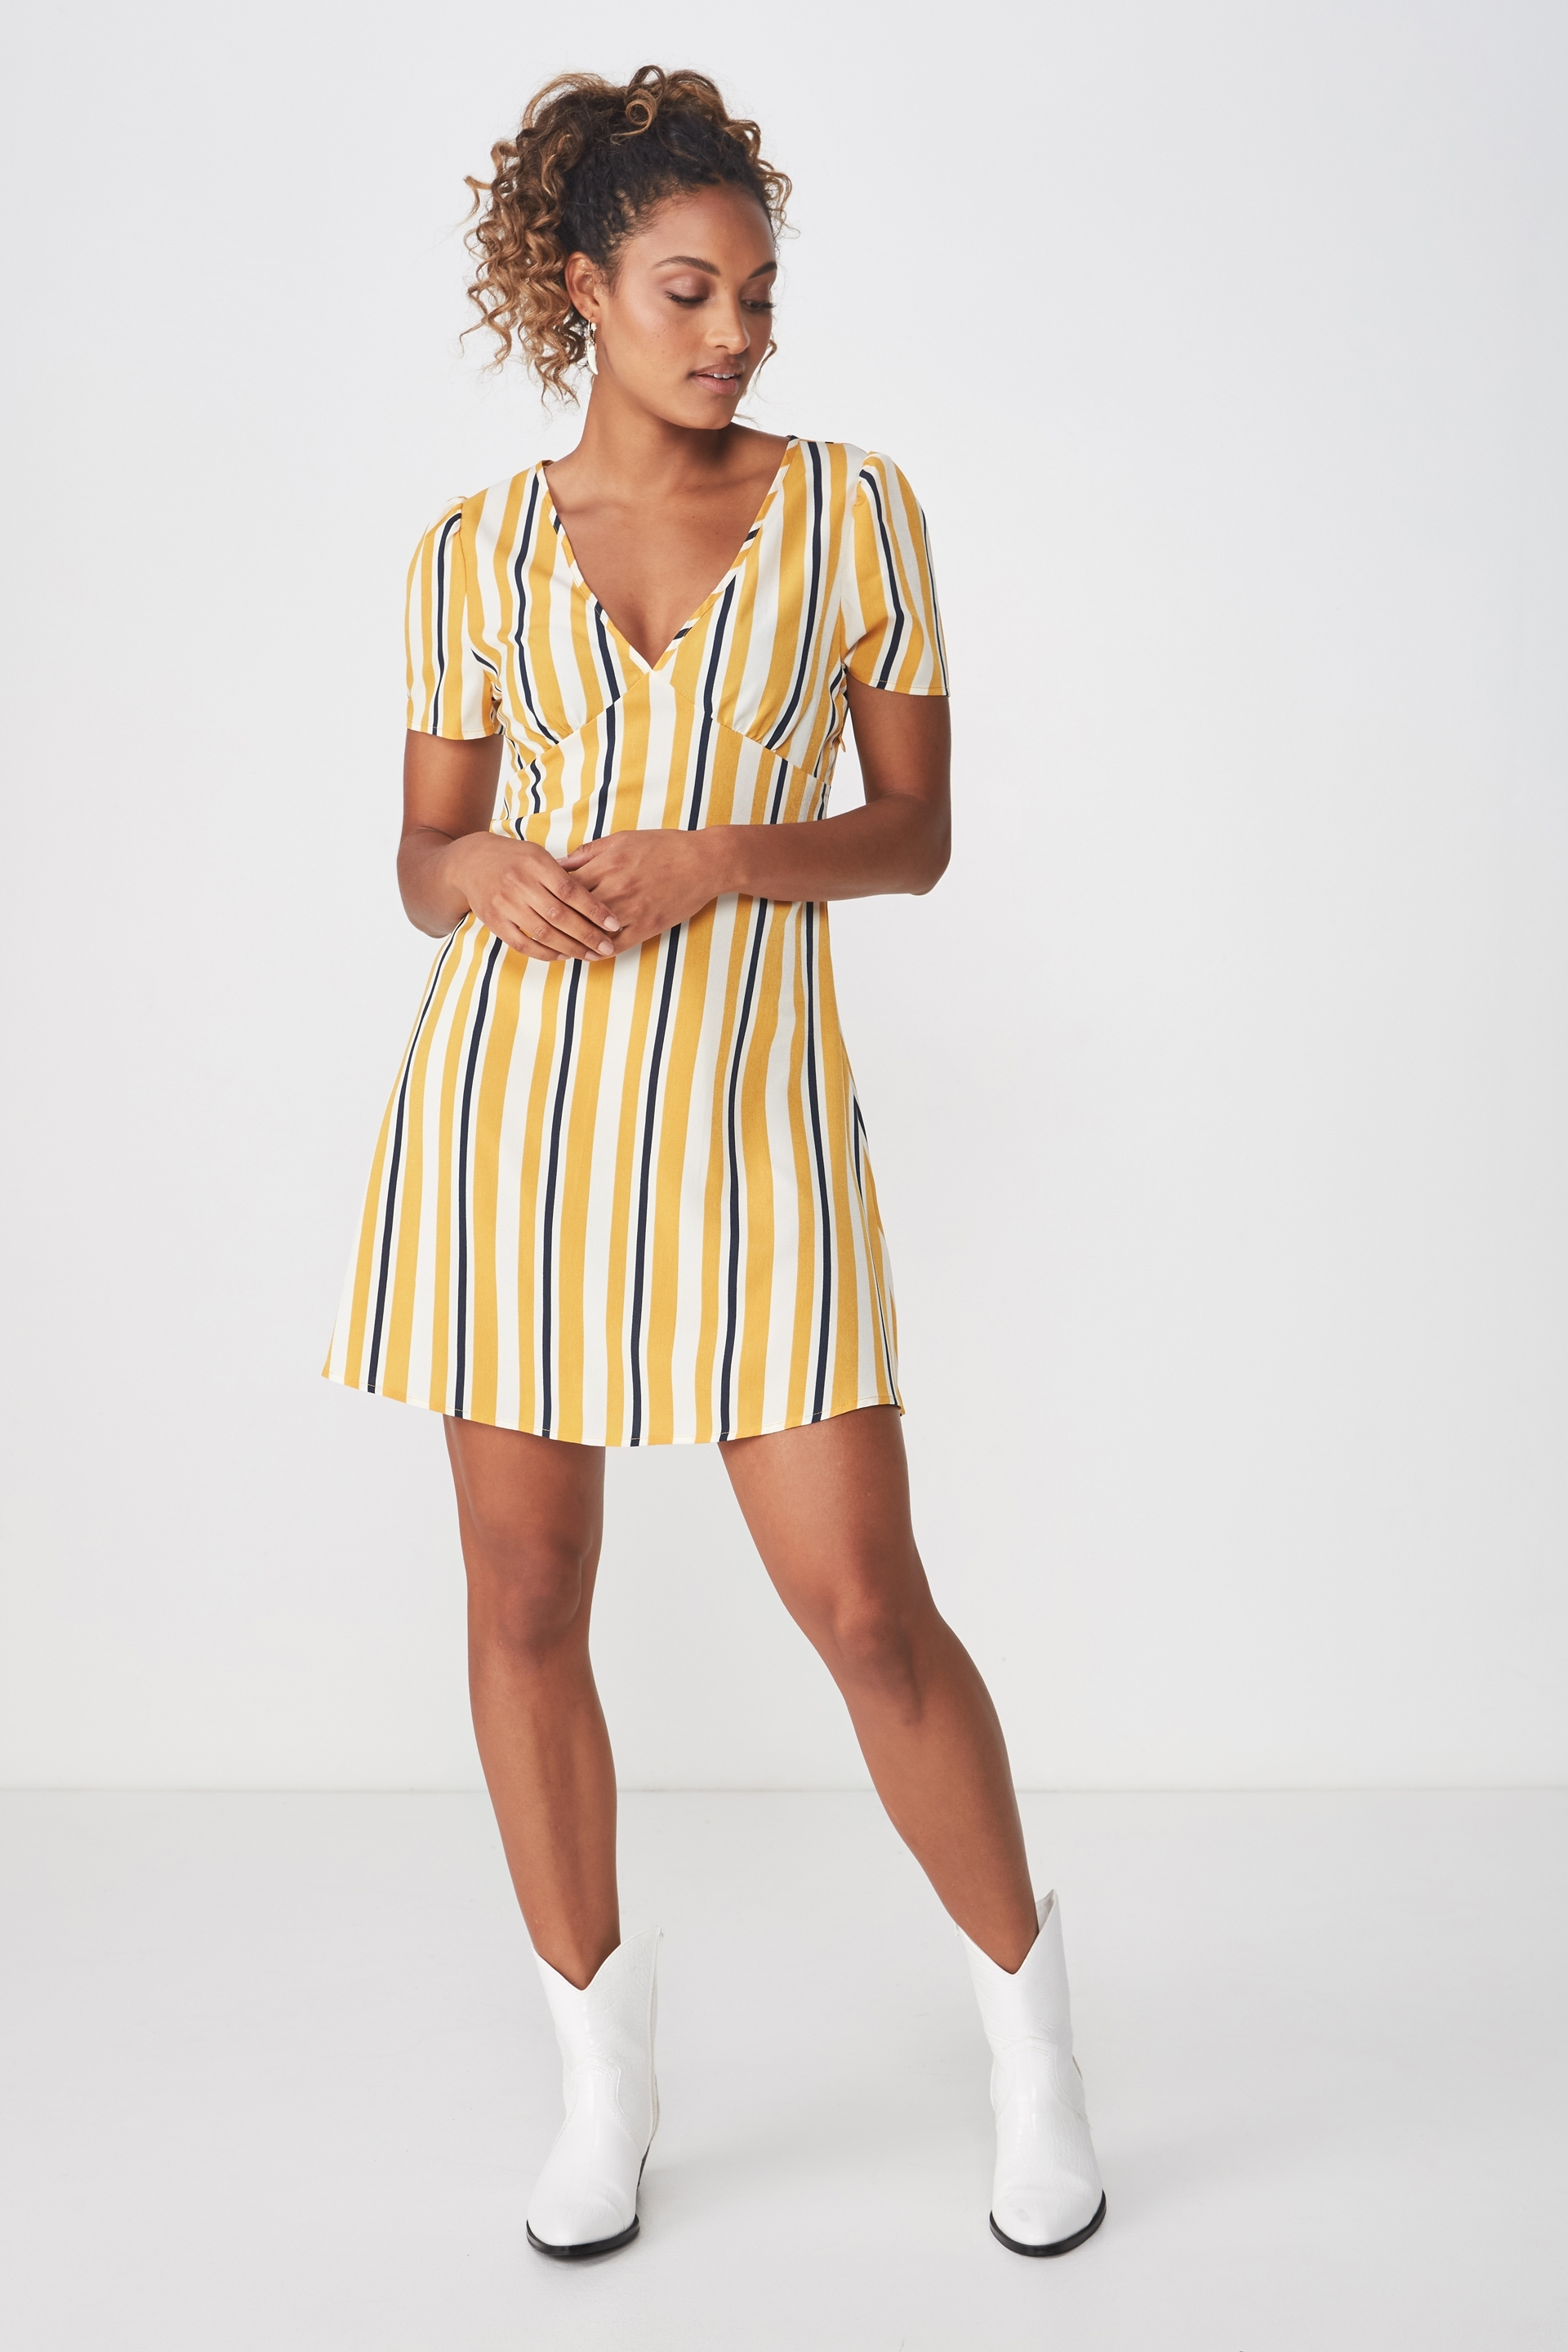 e38c33fdfcc9 Woven Dotti Deep V Puff Sleeve Mini Dress, DAISY STRIPE GOLDEN YELLOW